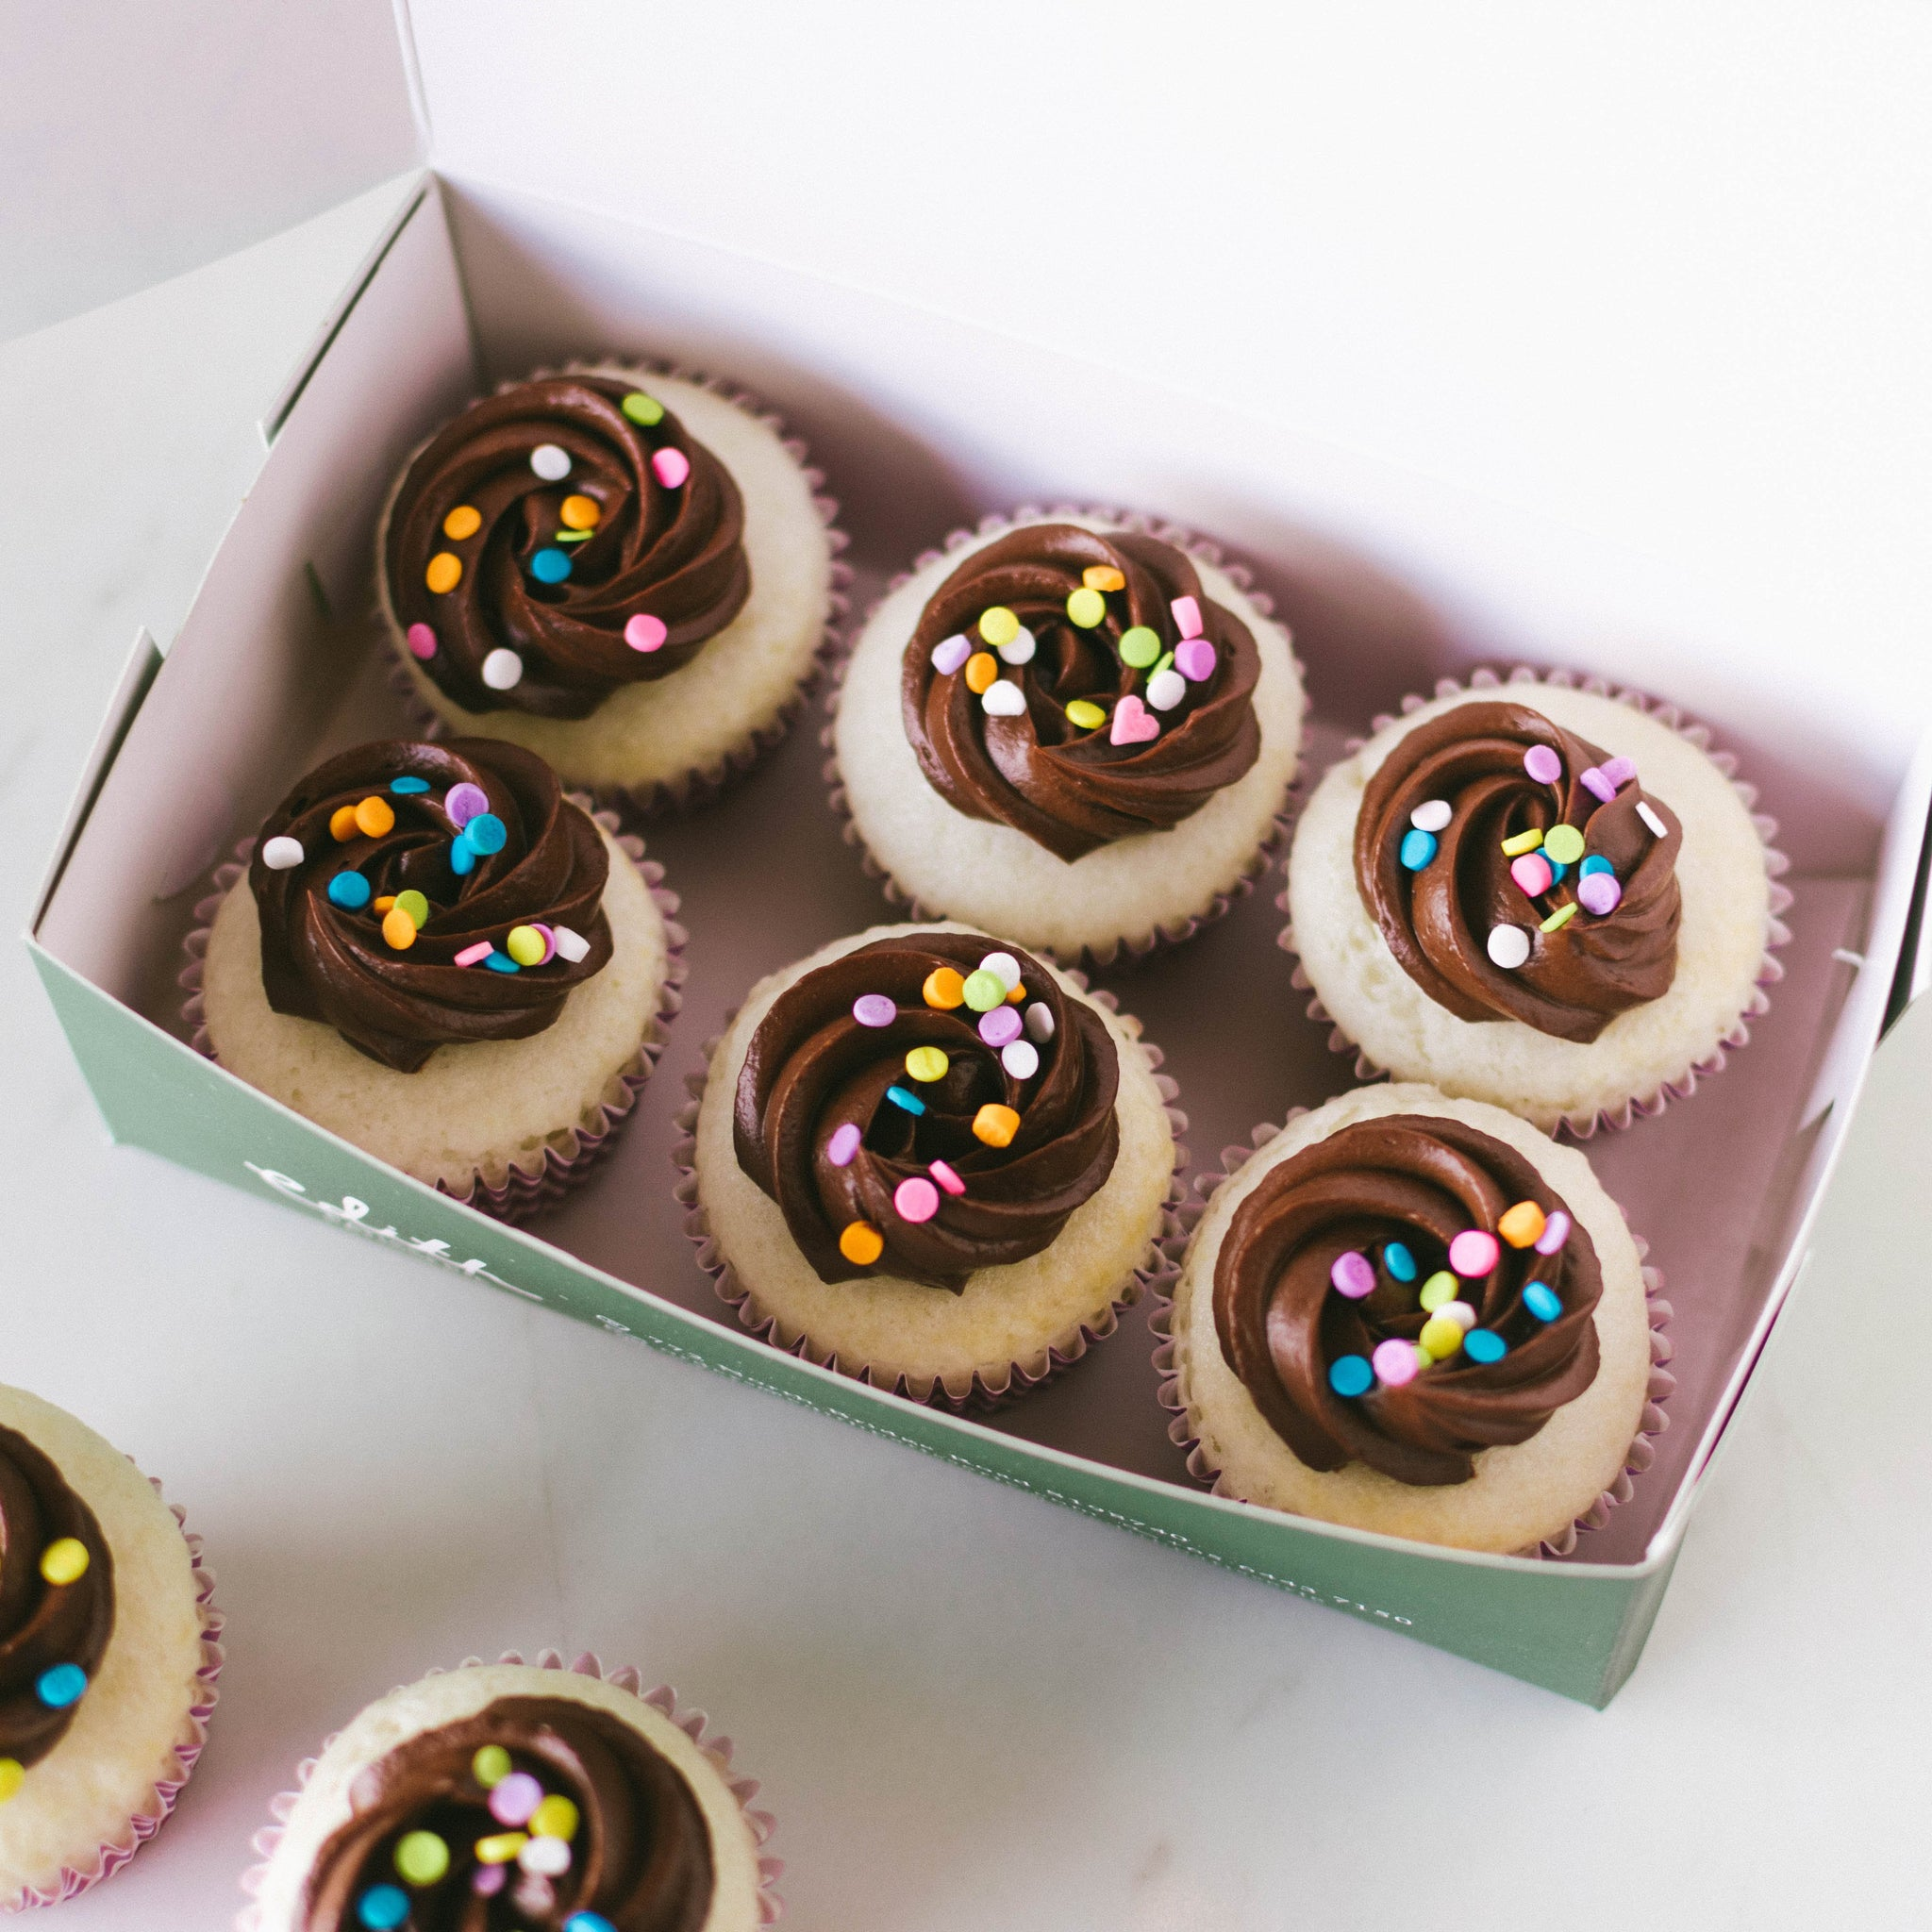 Mini Vanilla Chocolate Cupcakes (Egg-Free & Dairy-Free) - Custom Bakes by Edith Patisserie